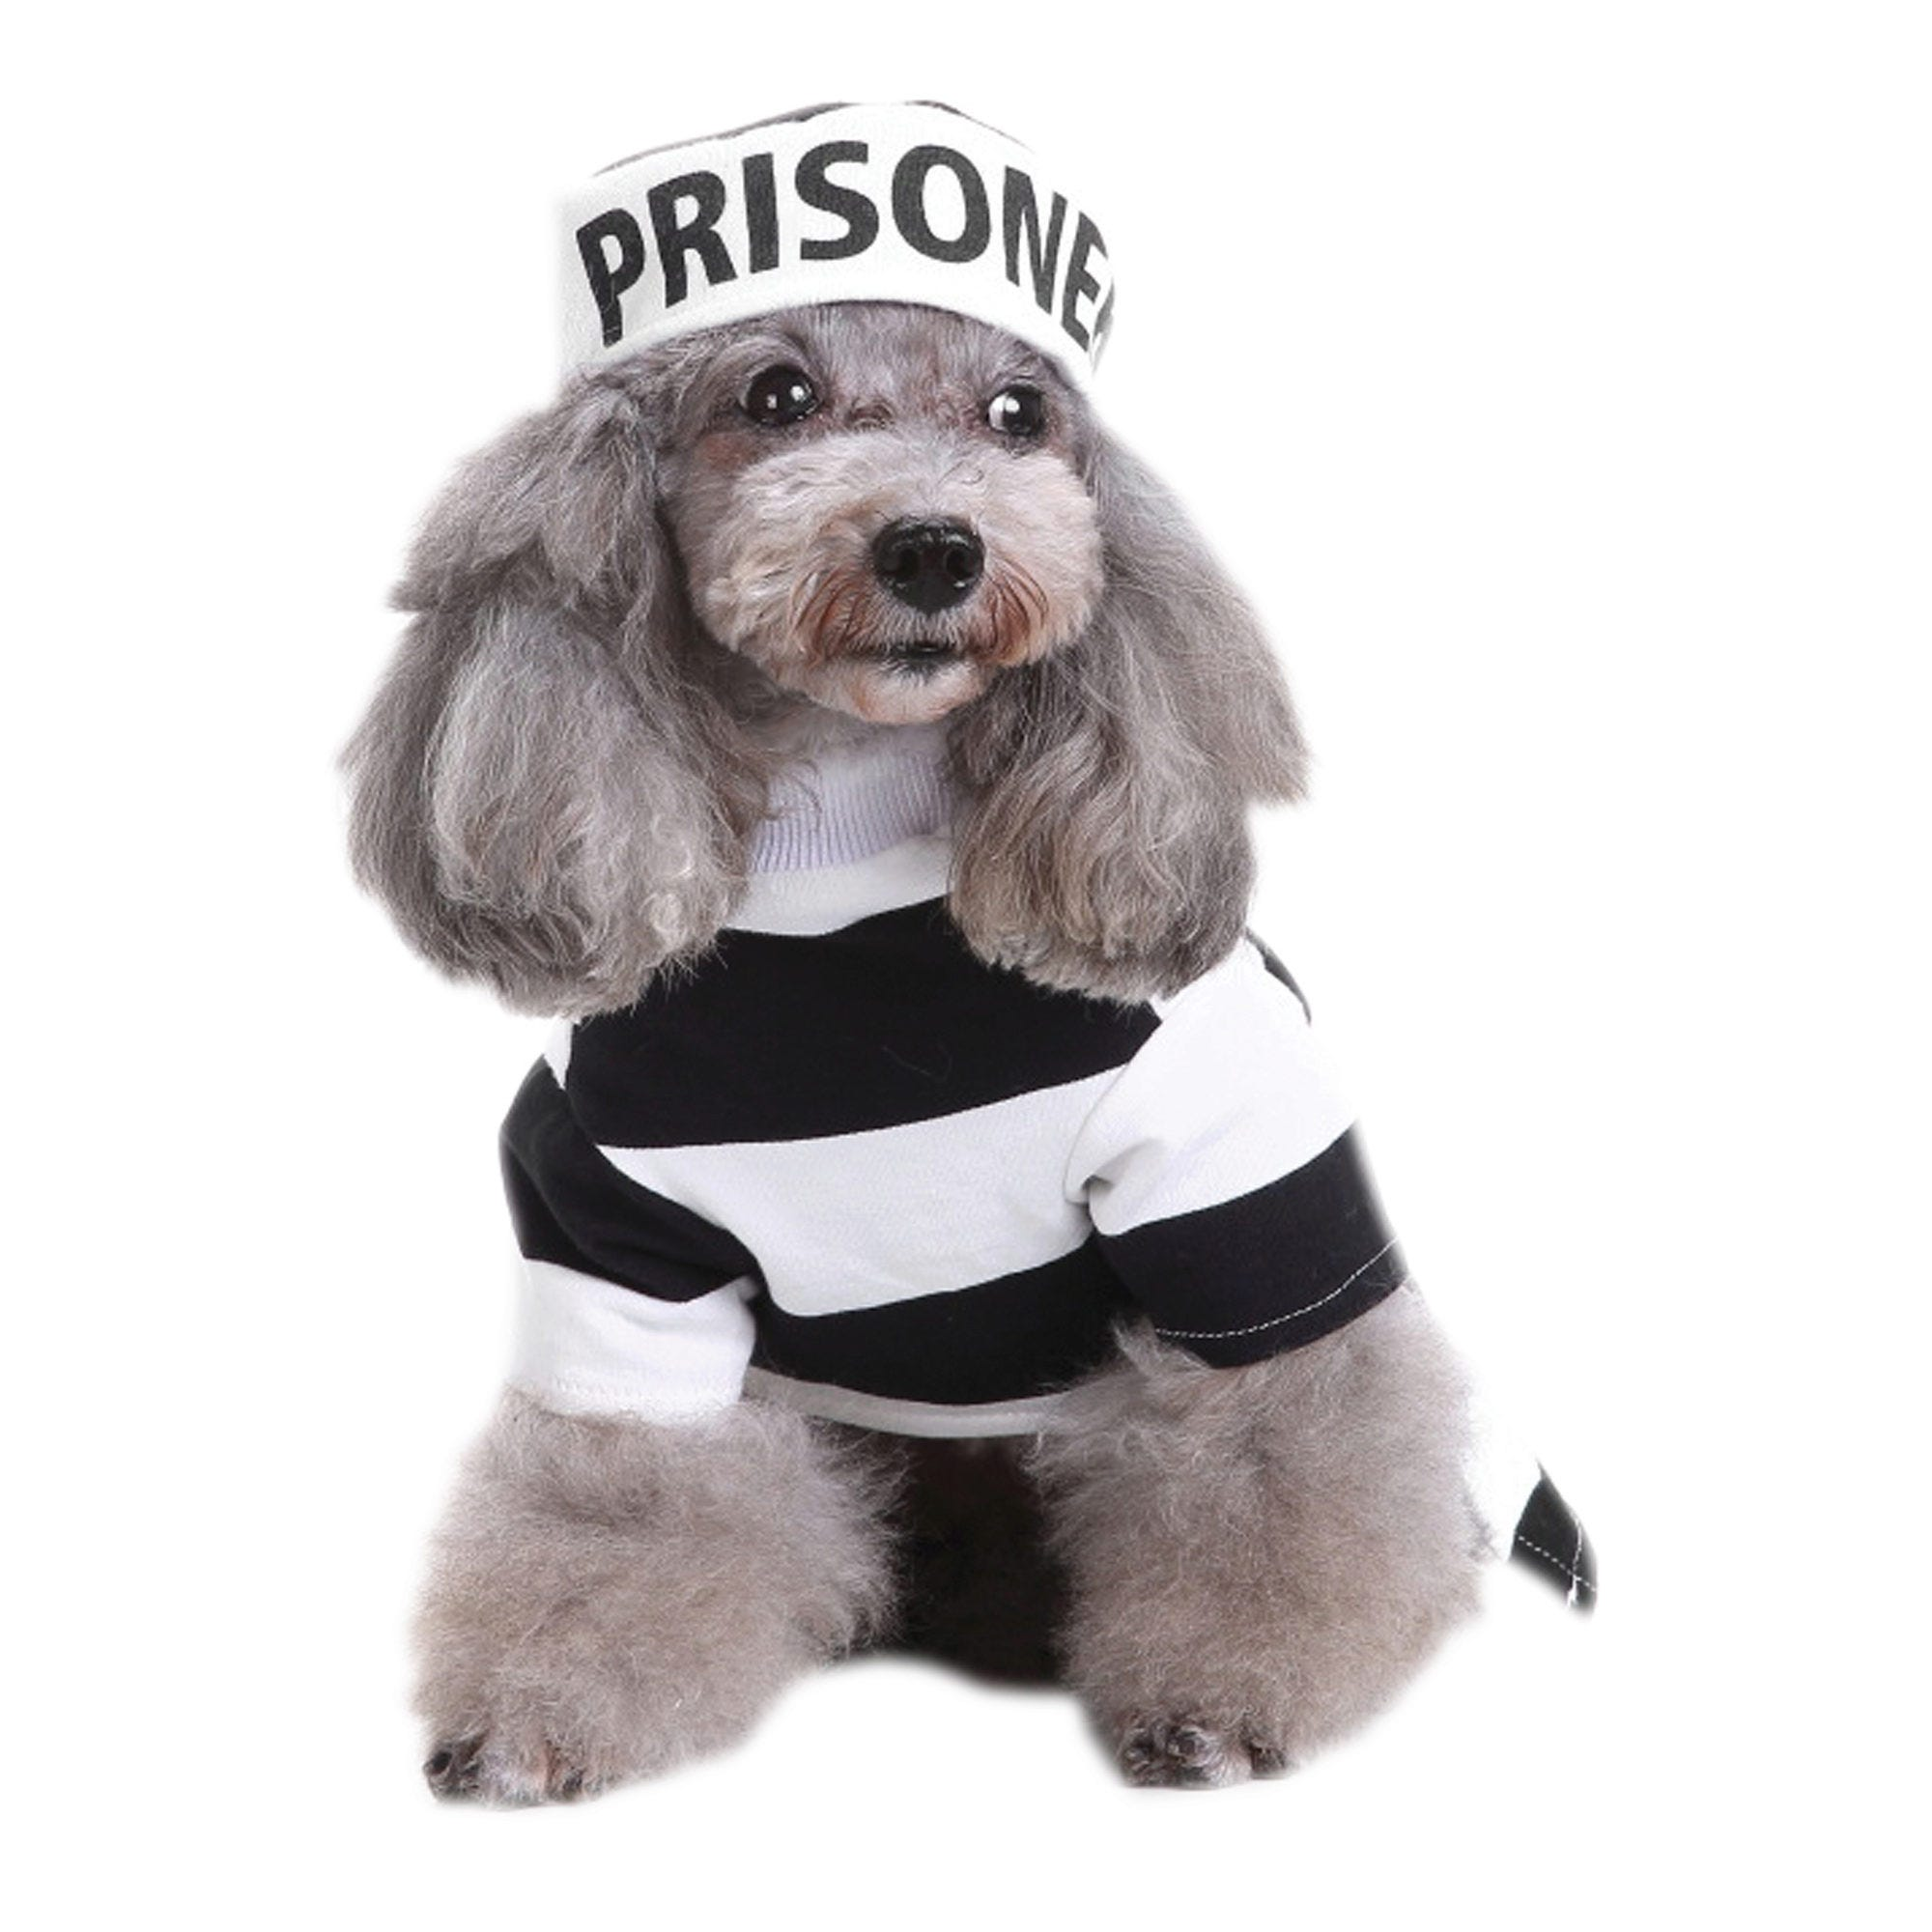 Prisoner Pet Costume - Qty 4